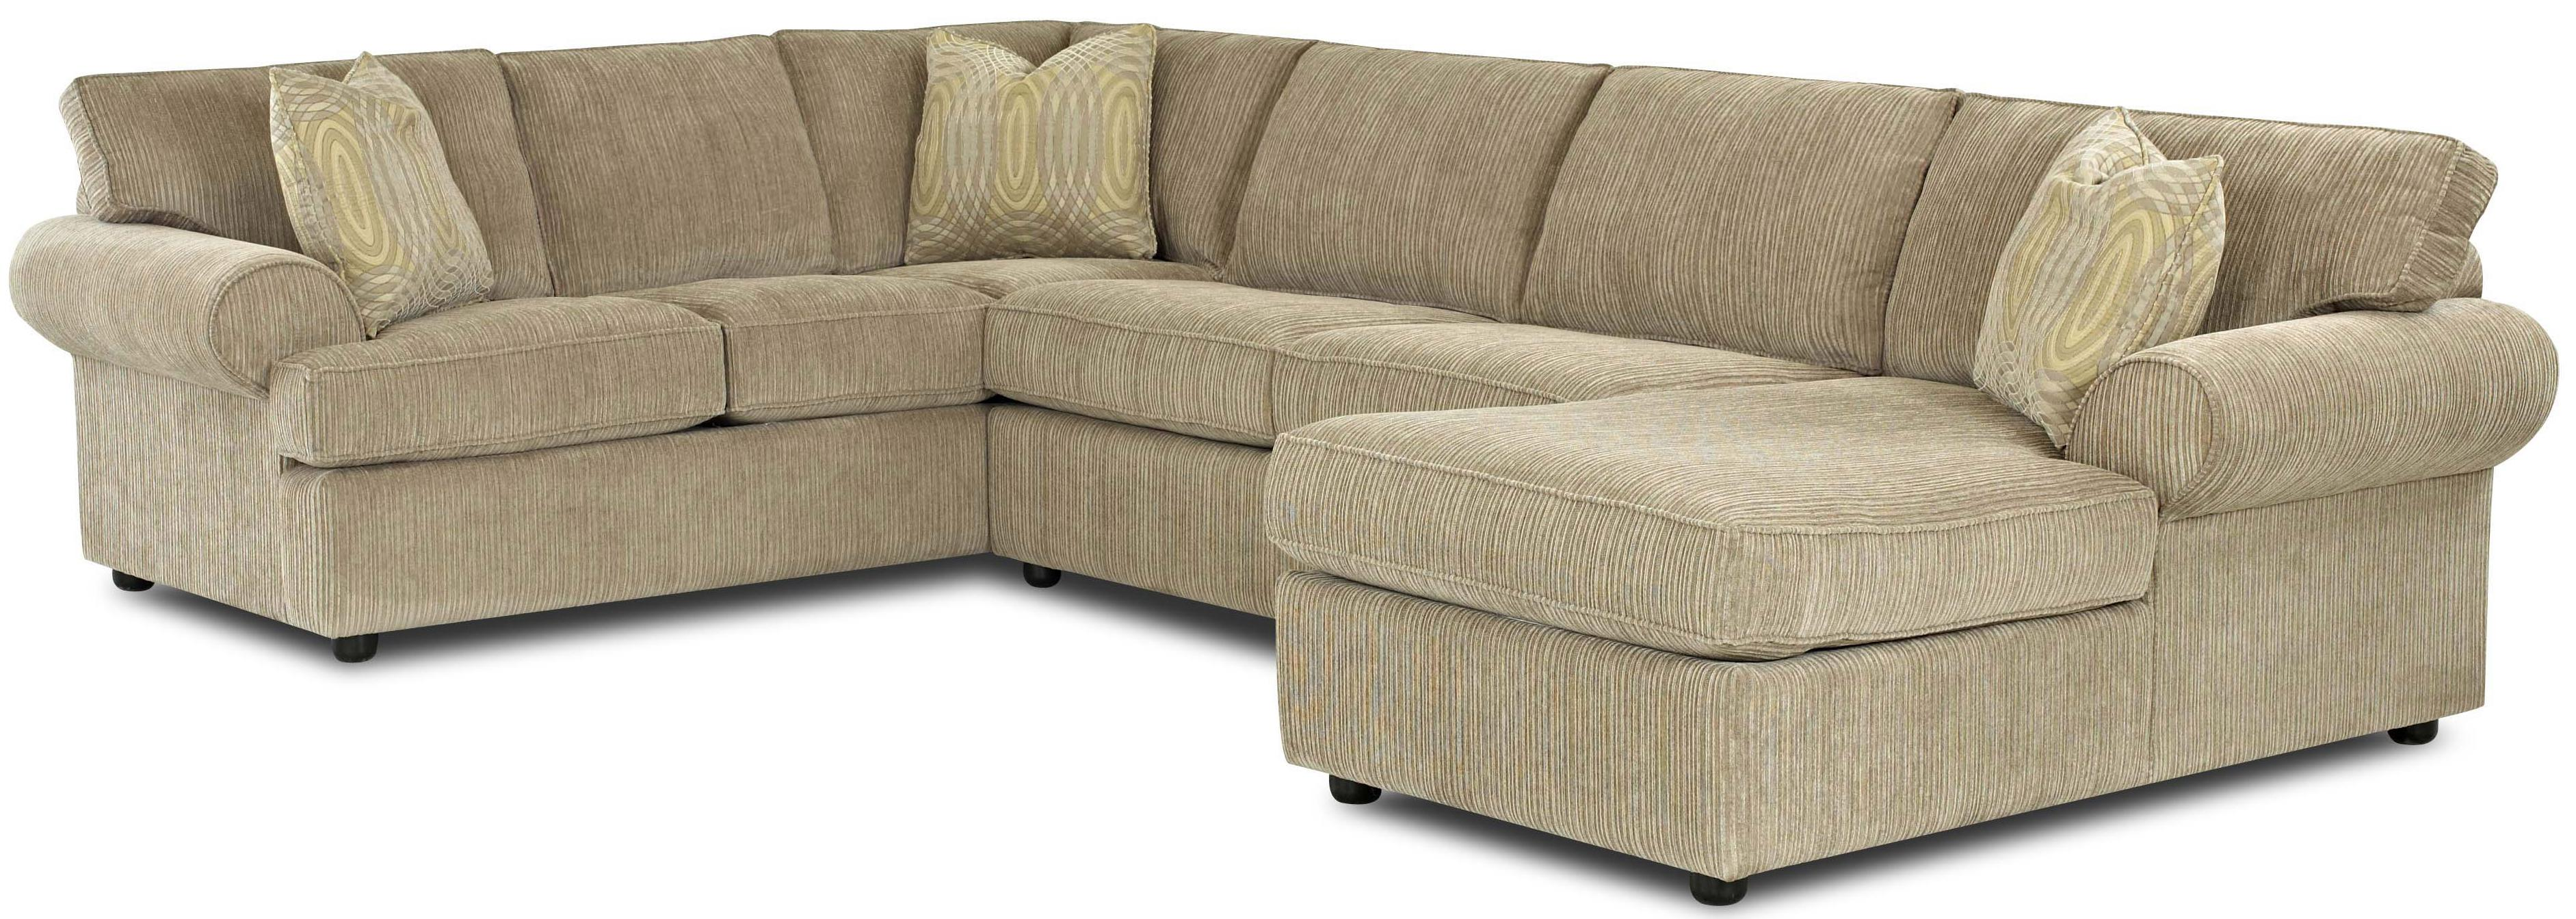 Klaussner Julington Sectional - Item Number: K91800L CRNS+A DRSL+R CHASE